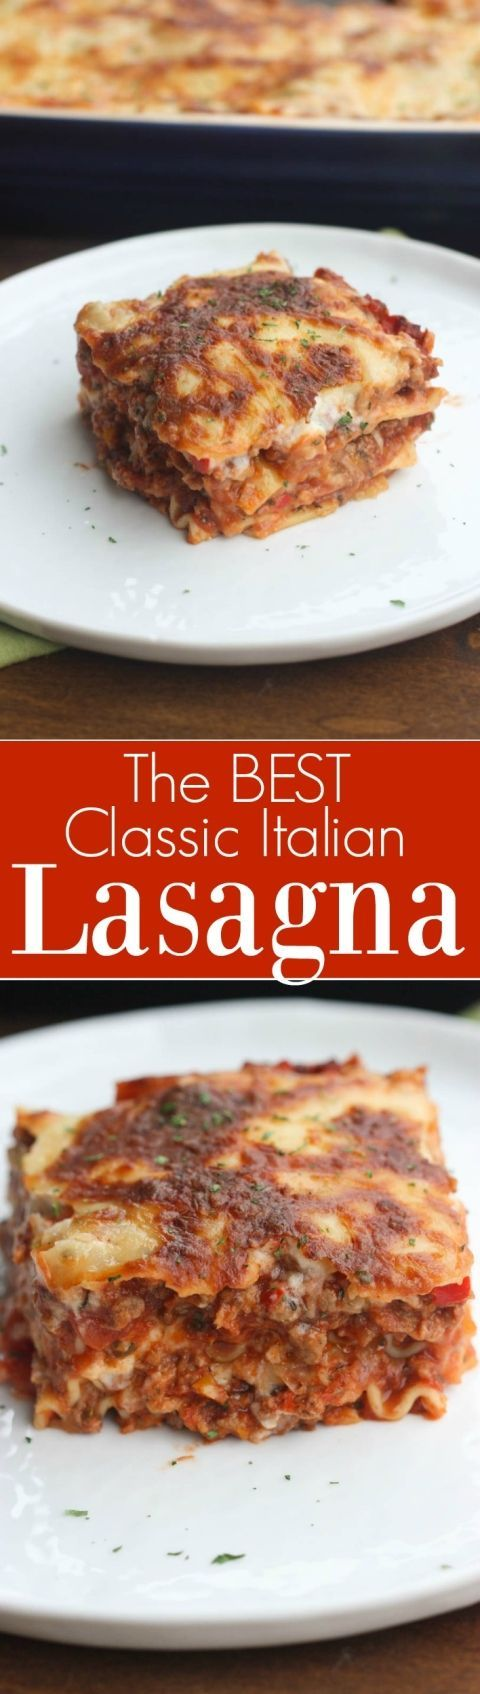 The BEST authentic lasagna recipe. NO Ricotta! LasMade with an easy homemade bechamel white sauce and red sauce. The best lasagna recipe, made from scratch! | Tastes Better From Scratch